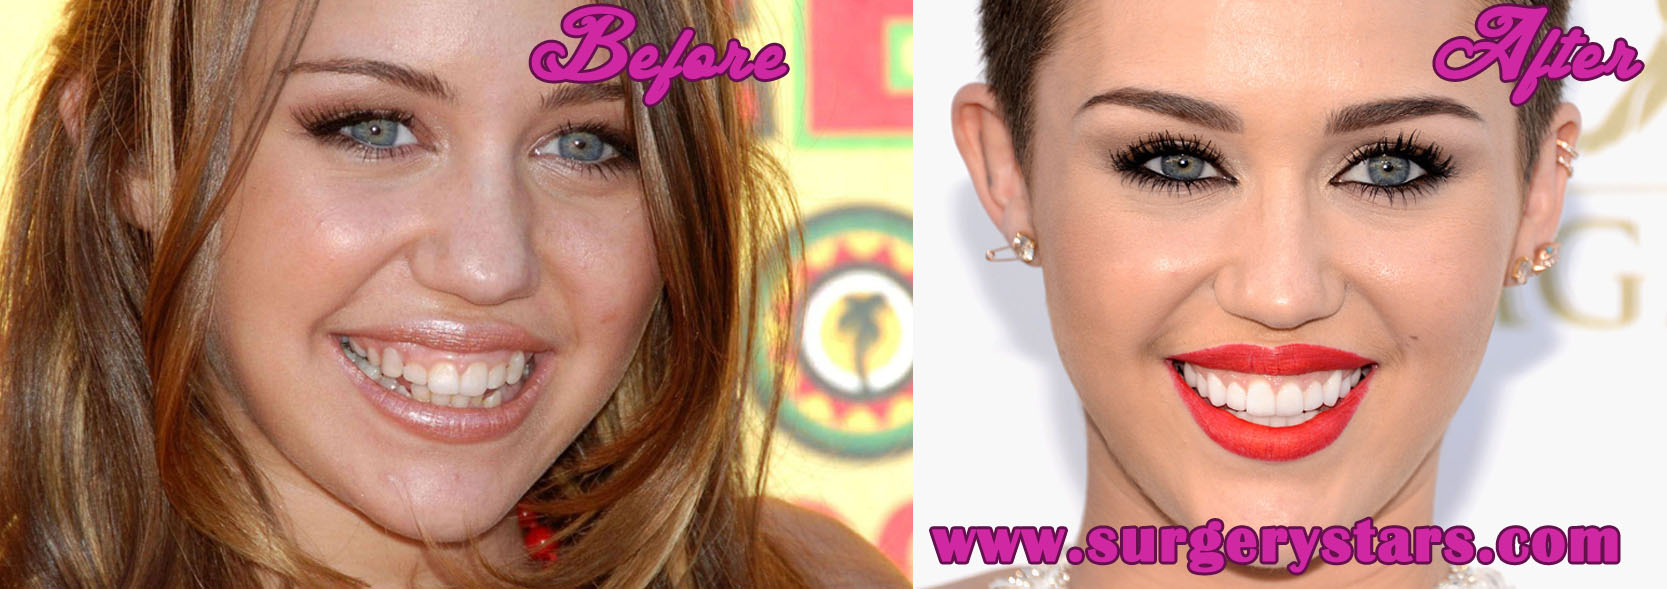 Miley Cyrus Teeth Before and After Pictures